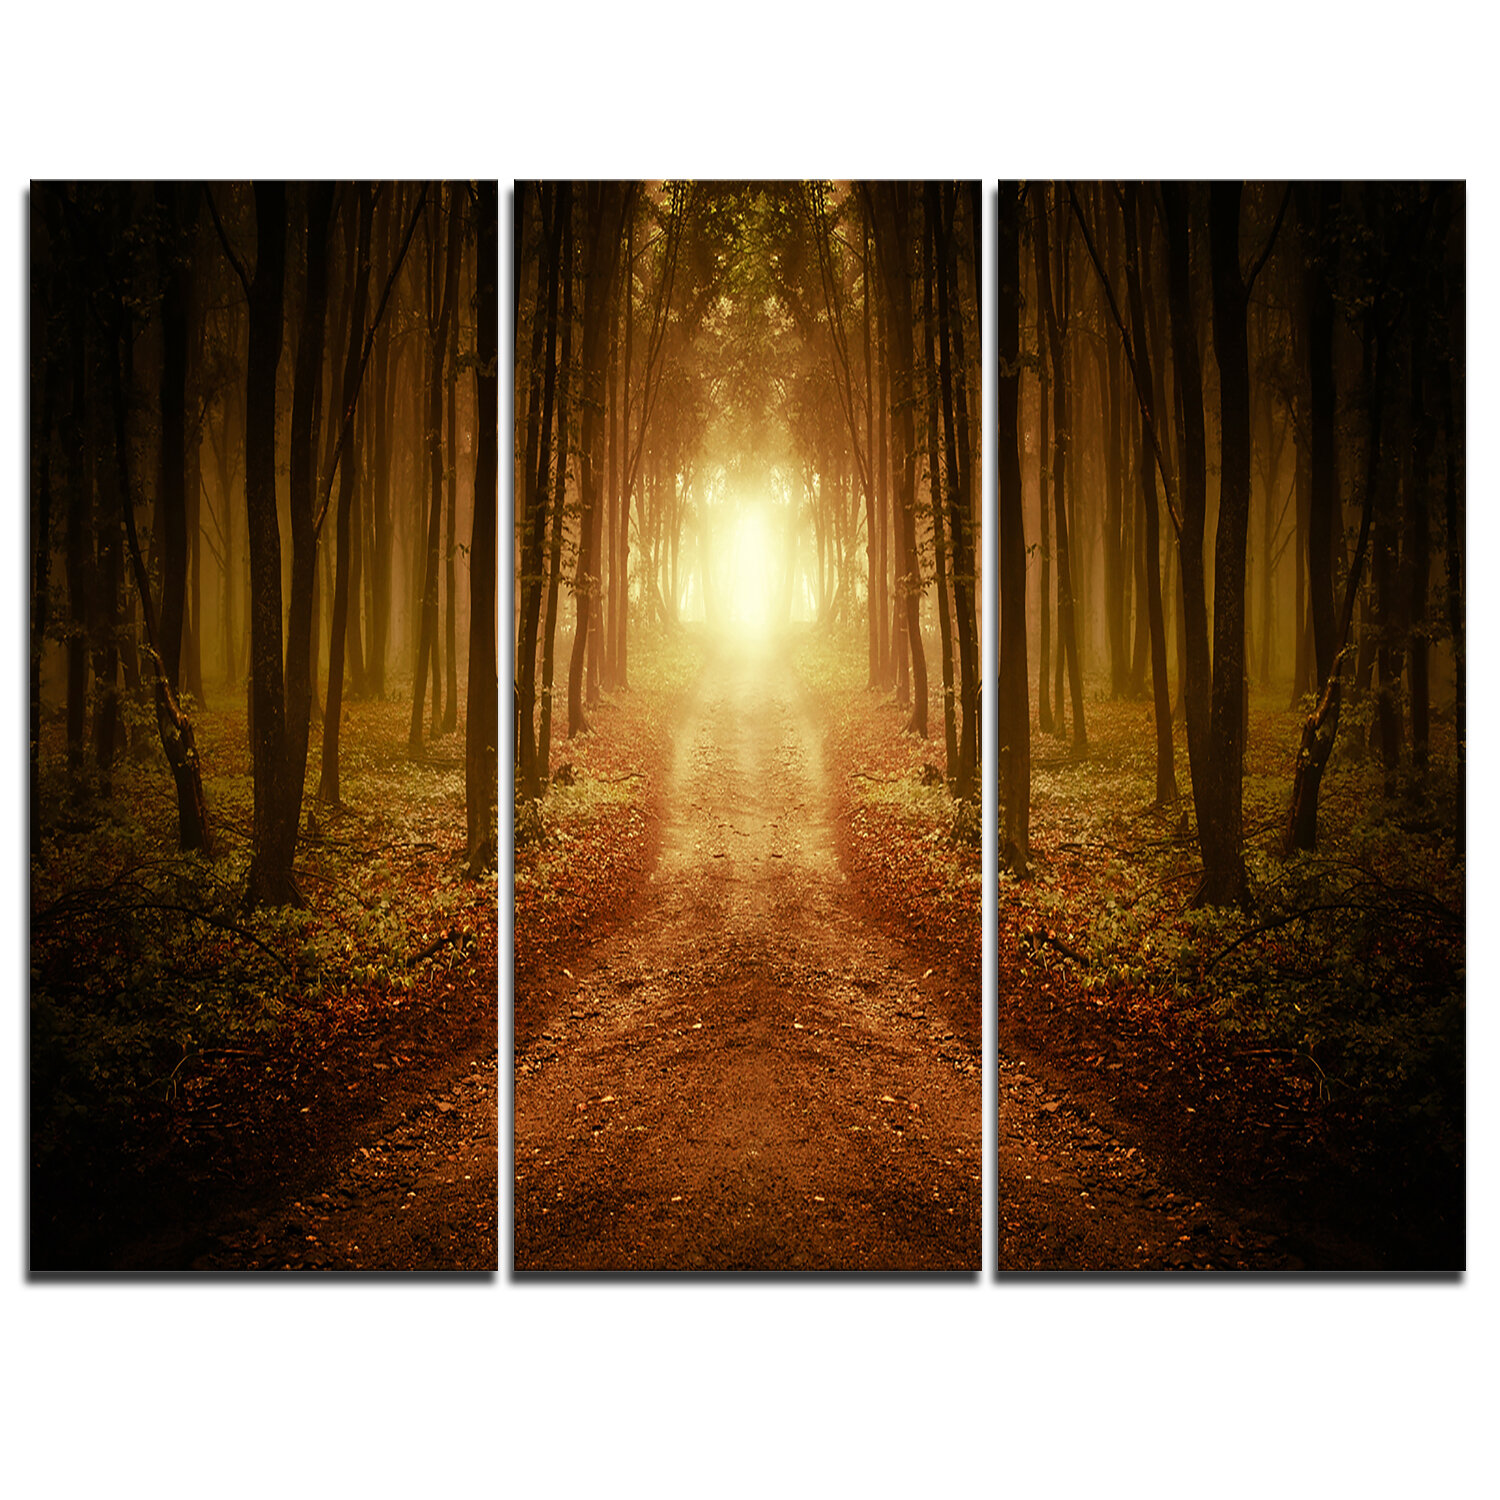 Designart Road In Symmetrical Forest 3 Piece Graphic Art On Wrapped Canvas Set Wayfair